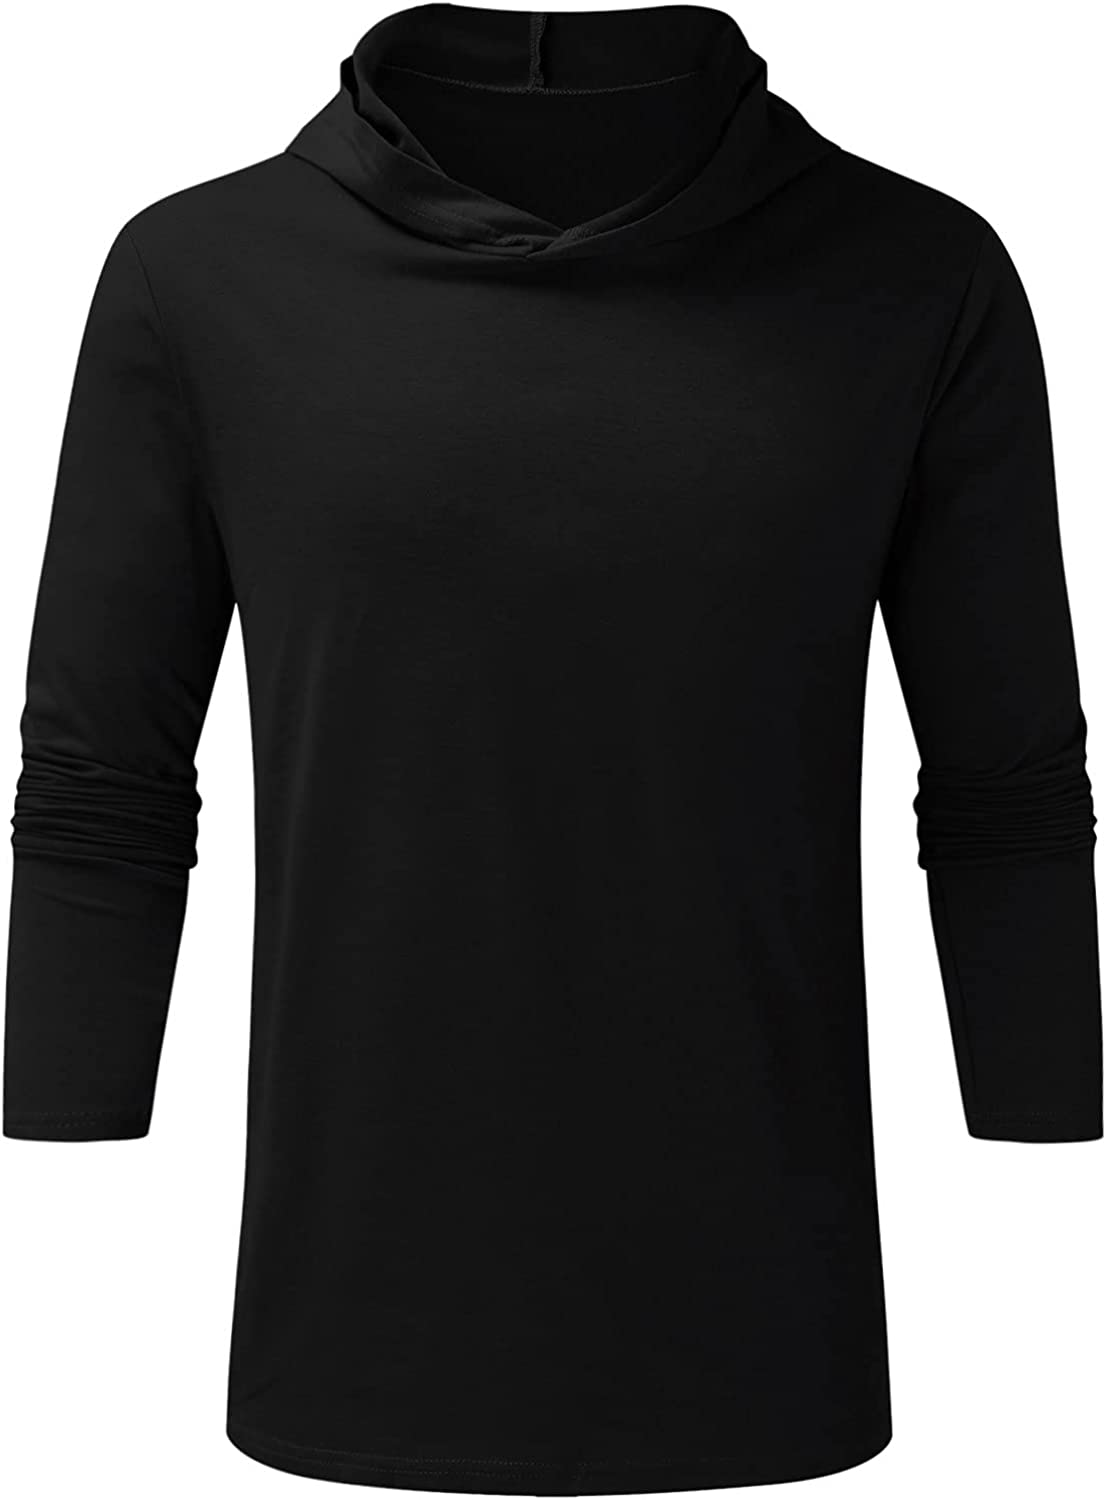 DZQUY Men's Casual Hooded T-Shirts Fashion Long Sleeve Outdoor Athletic Fishing Hiking Gym Muscle Pullover Shirts Rash Guards